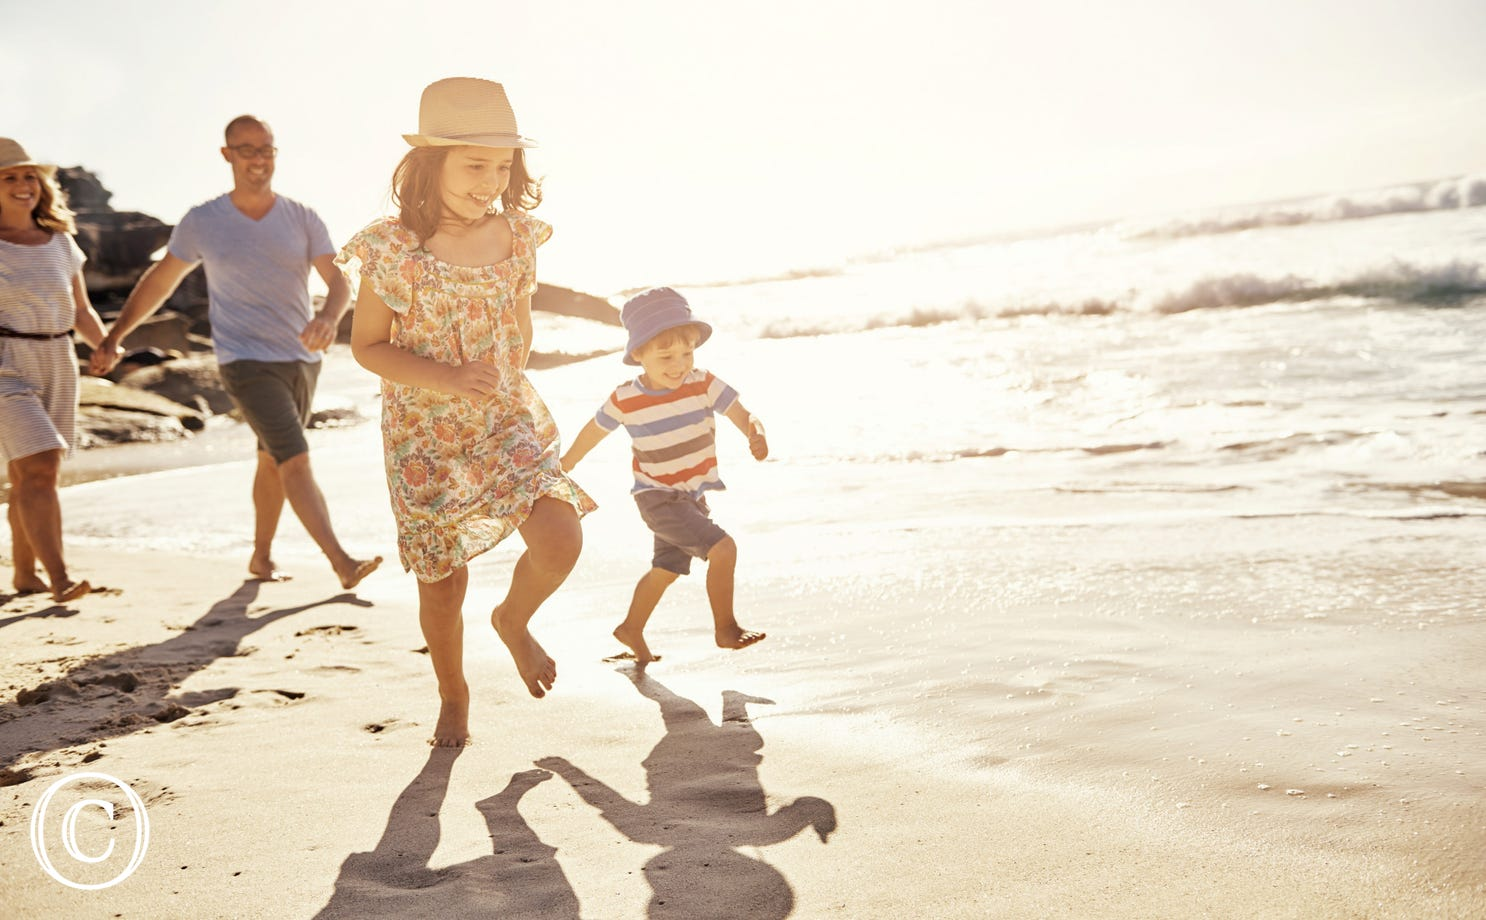 Pembrokeshire is perfect for a family holiday